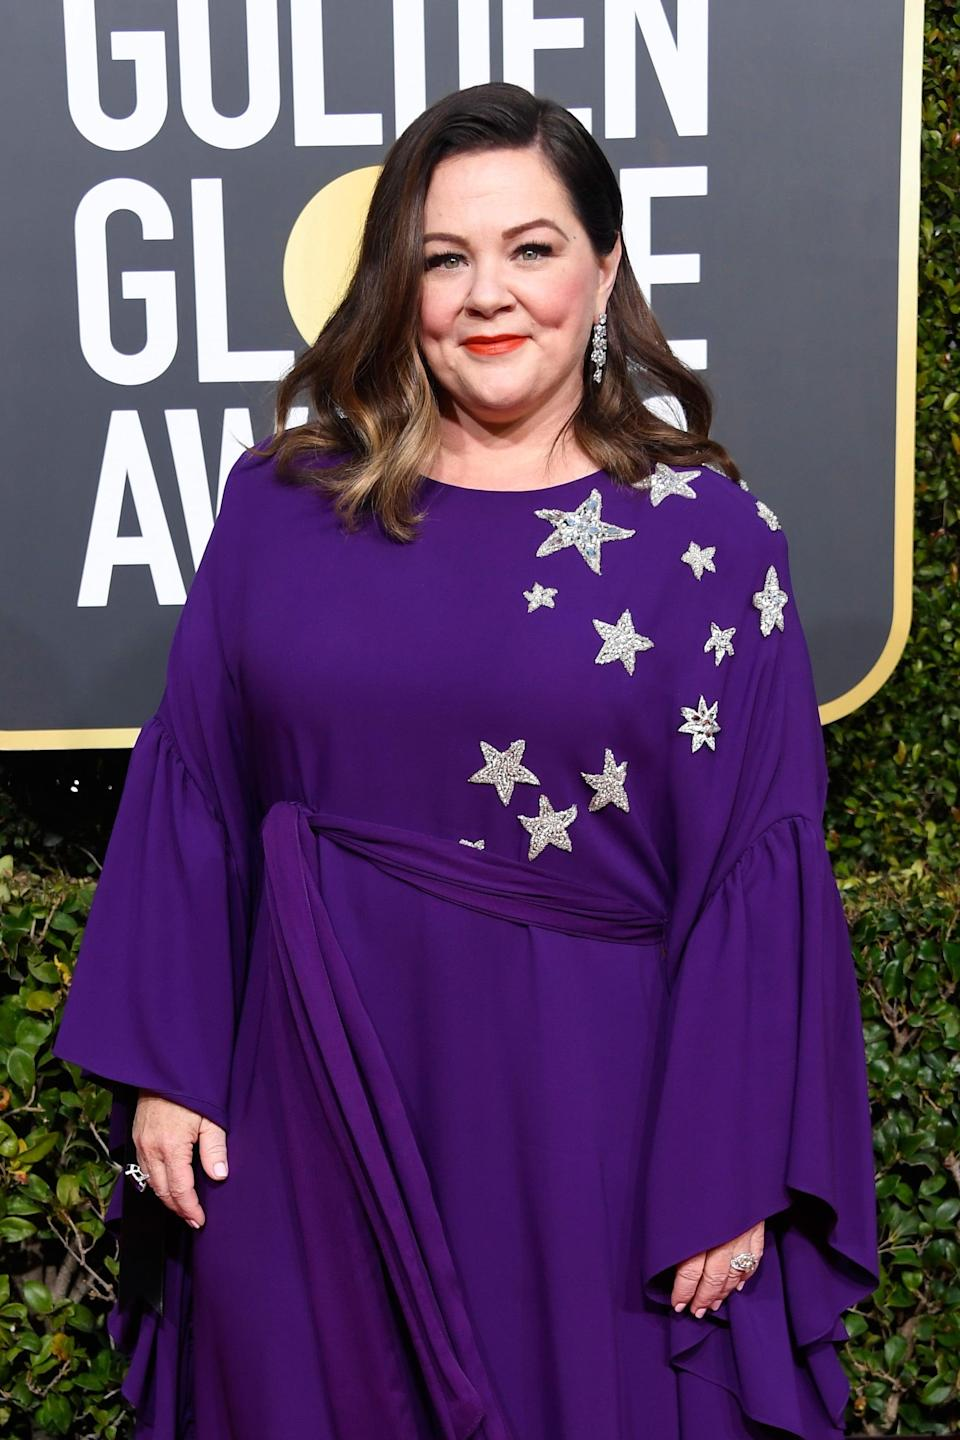 "<p>According to <strong>Variety</strong>, <a href=""http://variety.com/2019/film/news/melissa-mccarthy-little-mermaid-ursula-1203217481/"" class=""link rapid-noclick-resp"" rel=""nofollow noopener"" target=""_blank"" data-ylk=""slk:the comedian is in &quot;early talks&quot; to play the tentacled villain"">the comedian is in ""early talks"" to play the tentacled villain</a>. </p>"